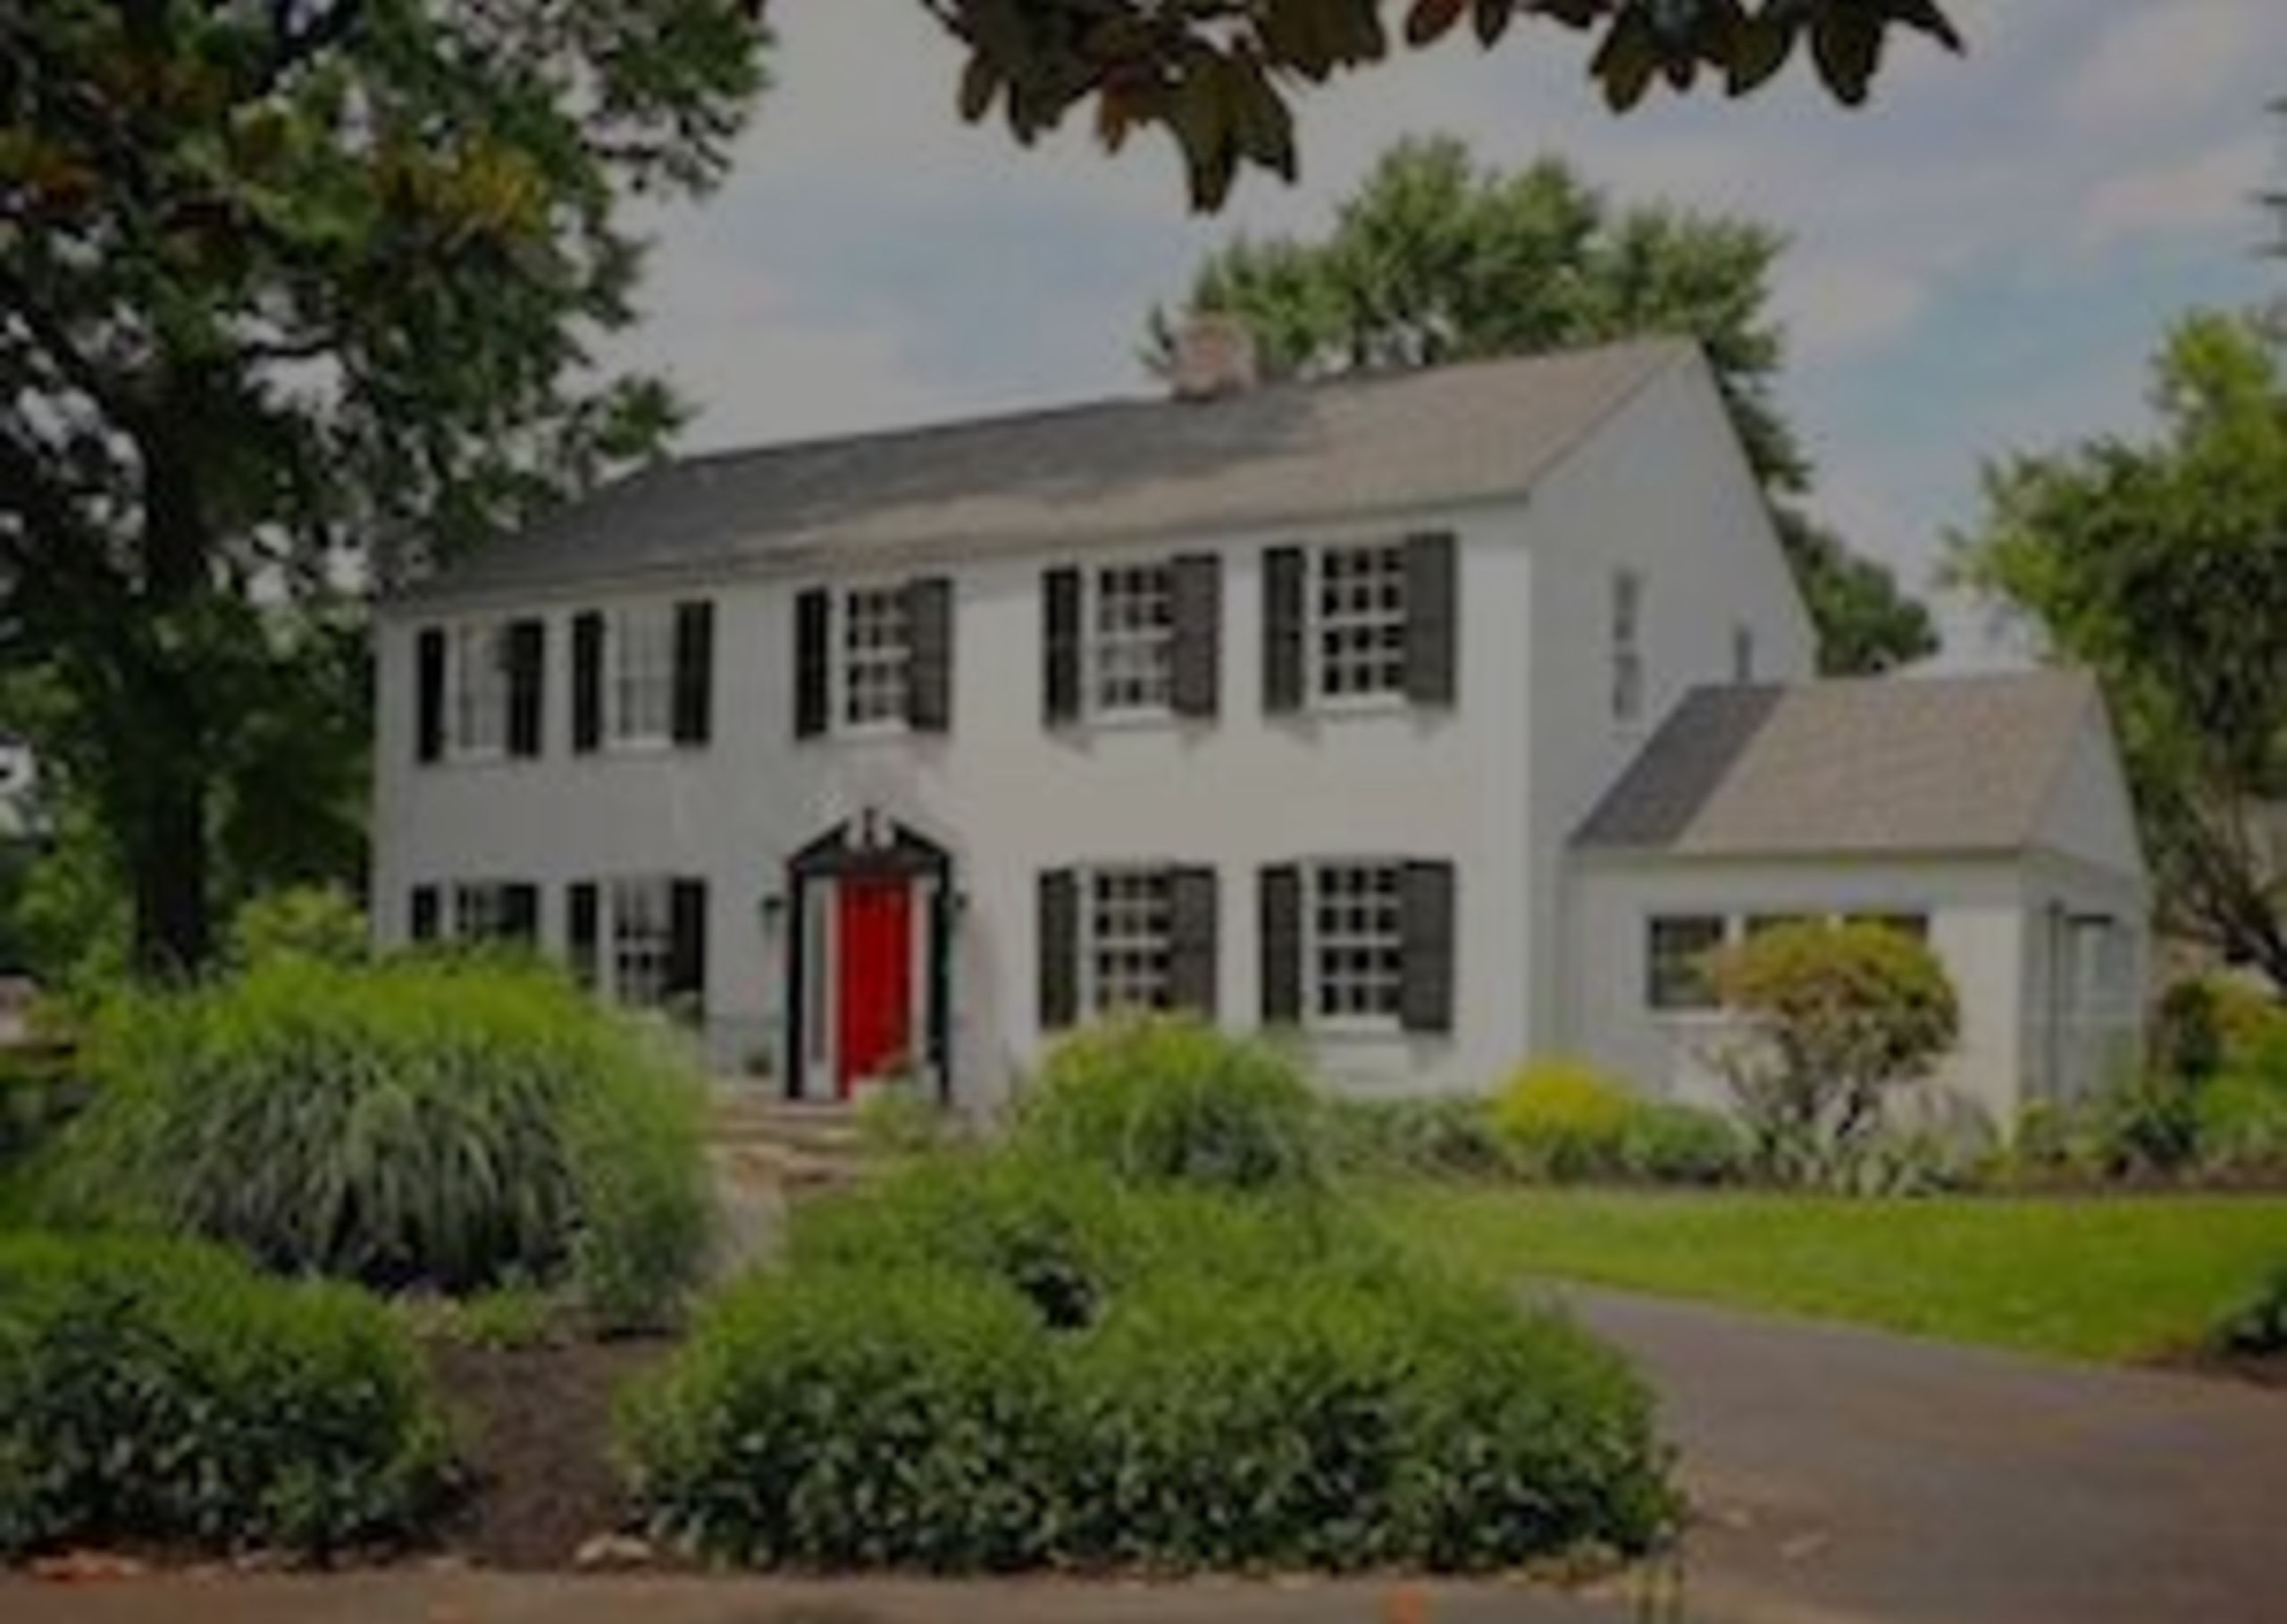 Open Houses | 7/8 + 7/9 in Loudoun, Clarke & Frederick